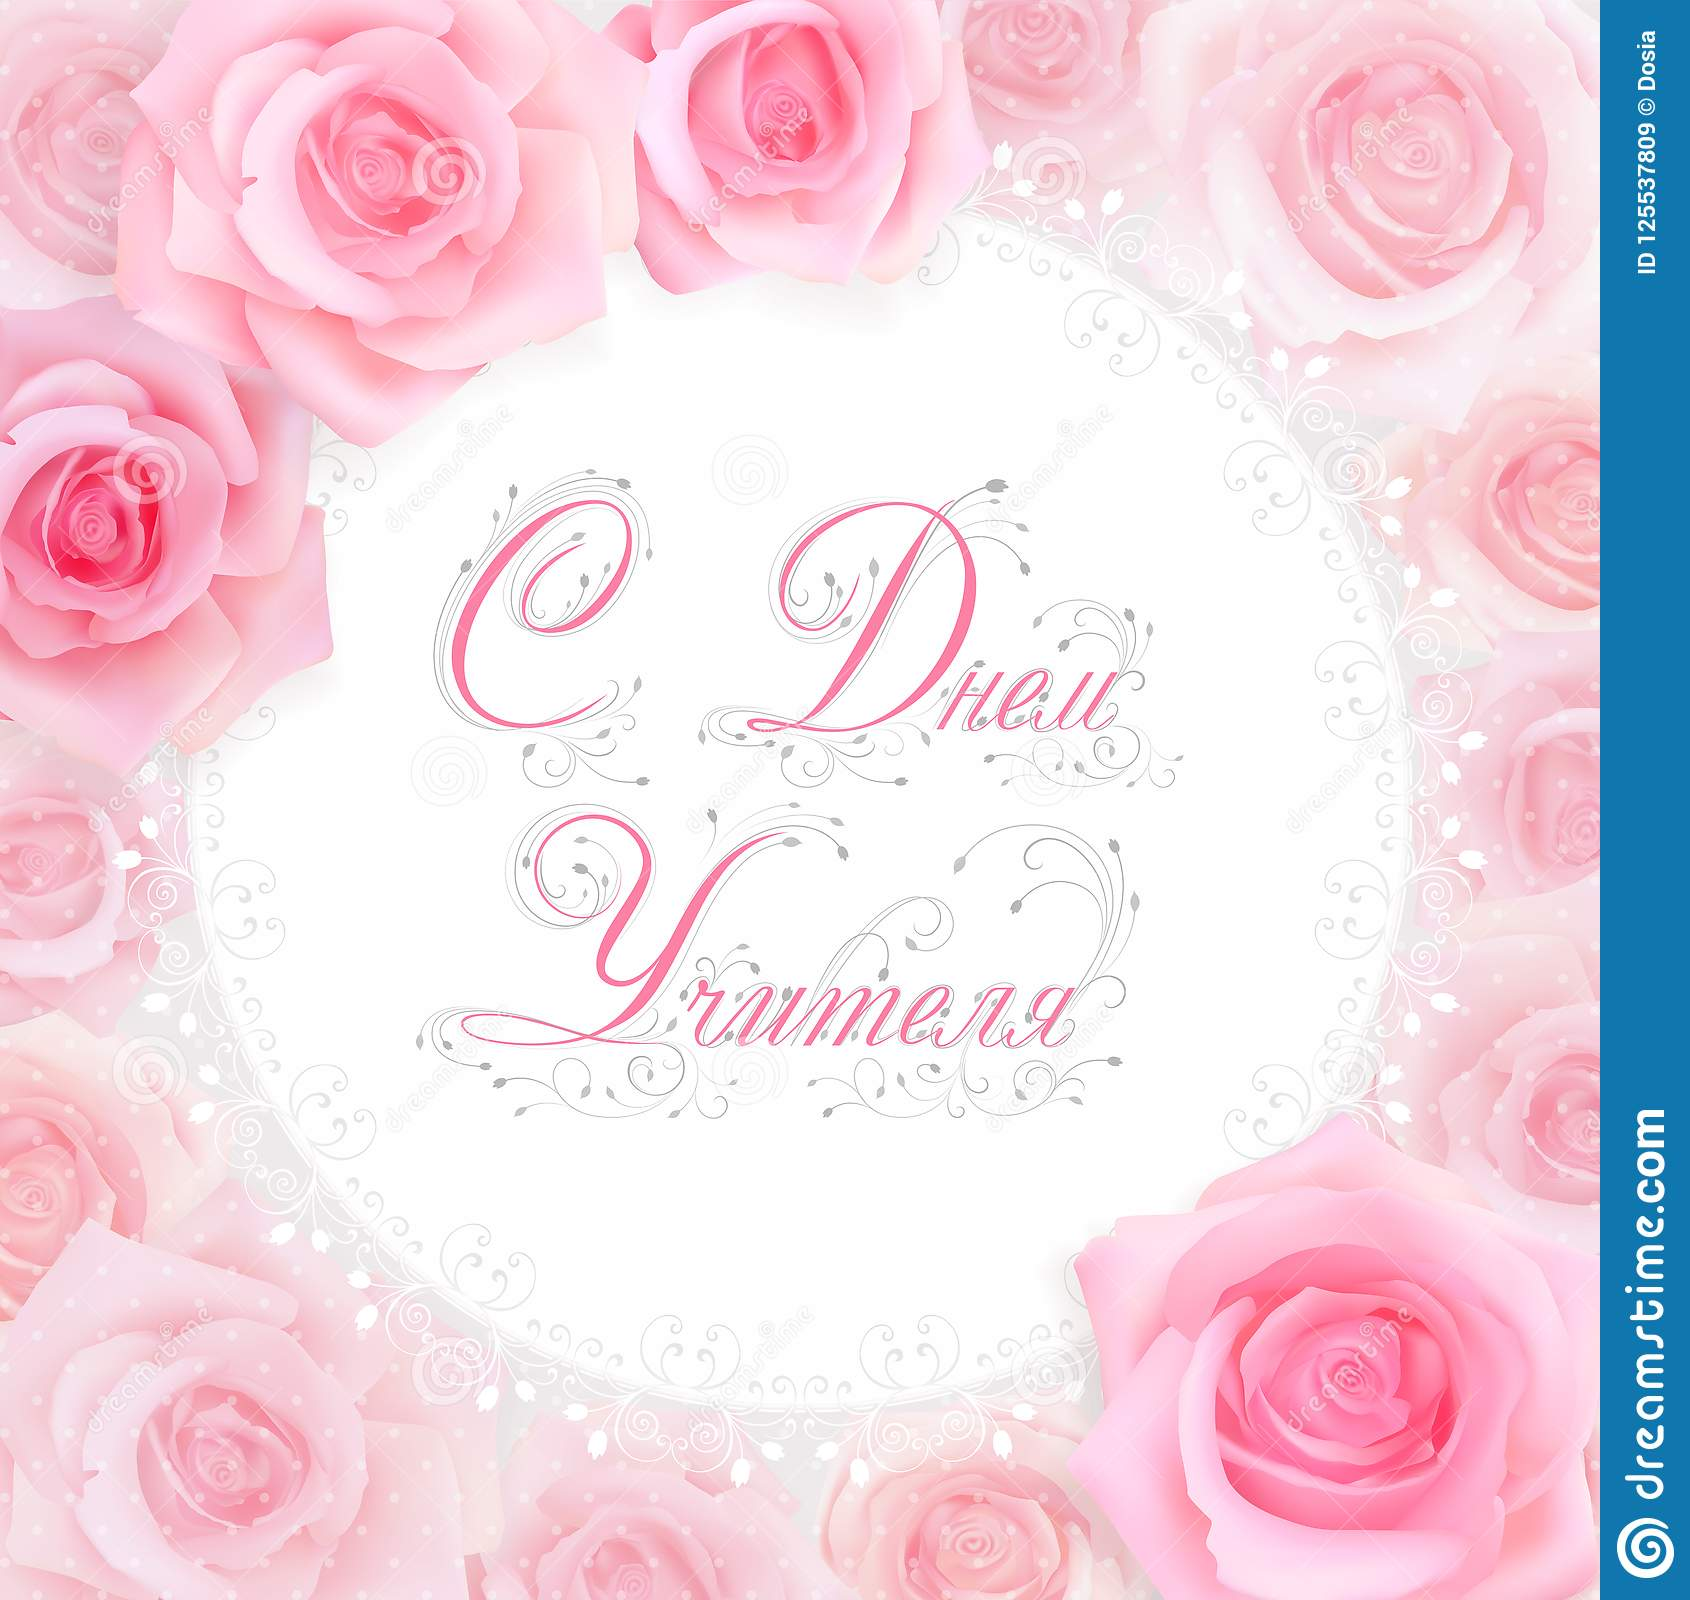 Happy teachers day card with roses stock vector illustration of happy teachers day greeting card with pink roses white frame with calligraphy congratulations in russian language on a light background m4hsunfo